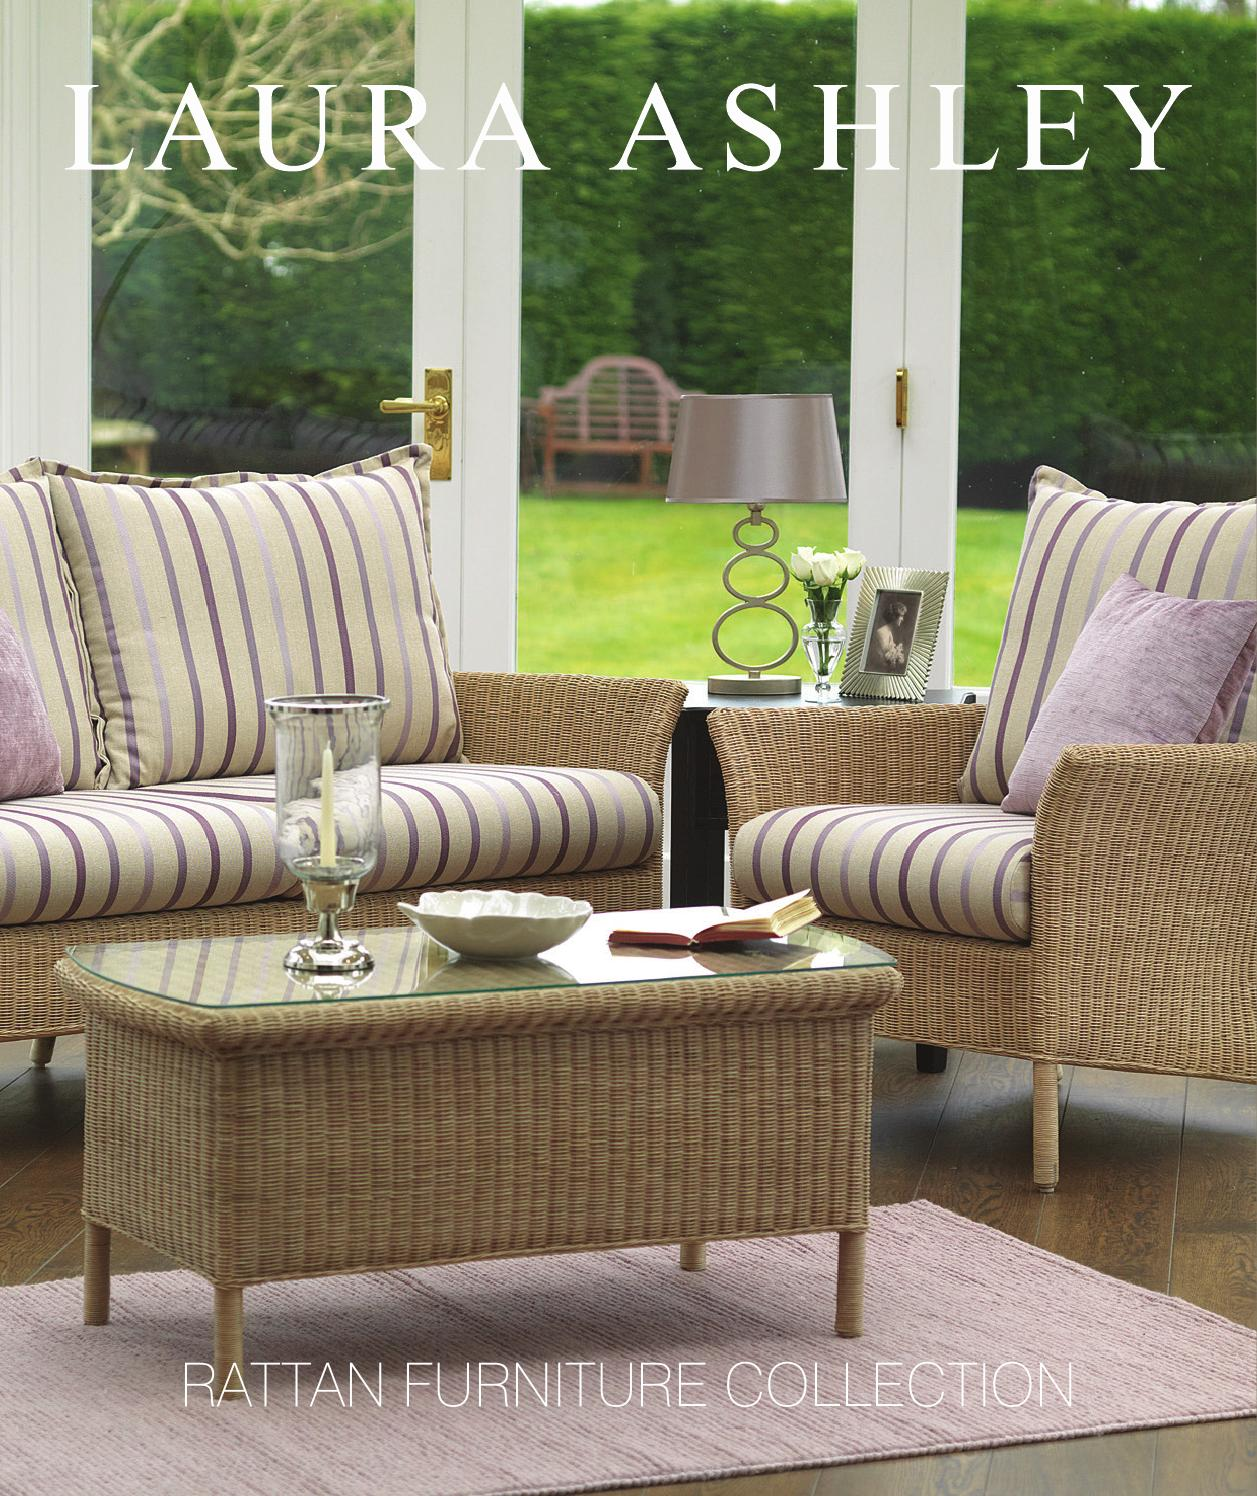 Laura Ashley Furniture Stores: Laura Ashley Rattan Furniture By Daro (Trading) Ltd